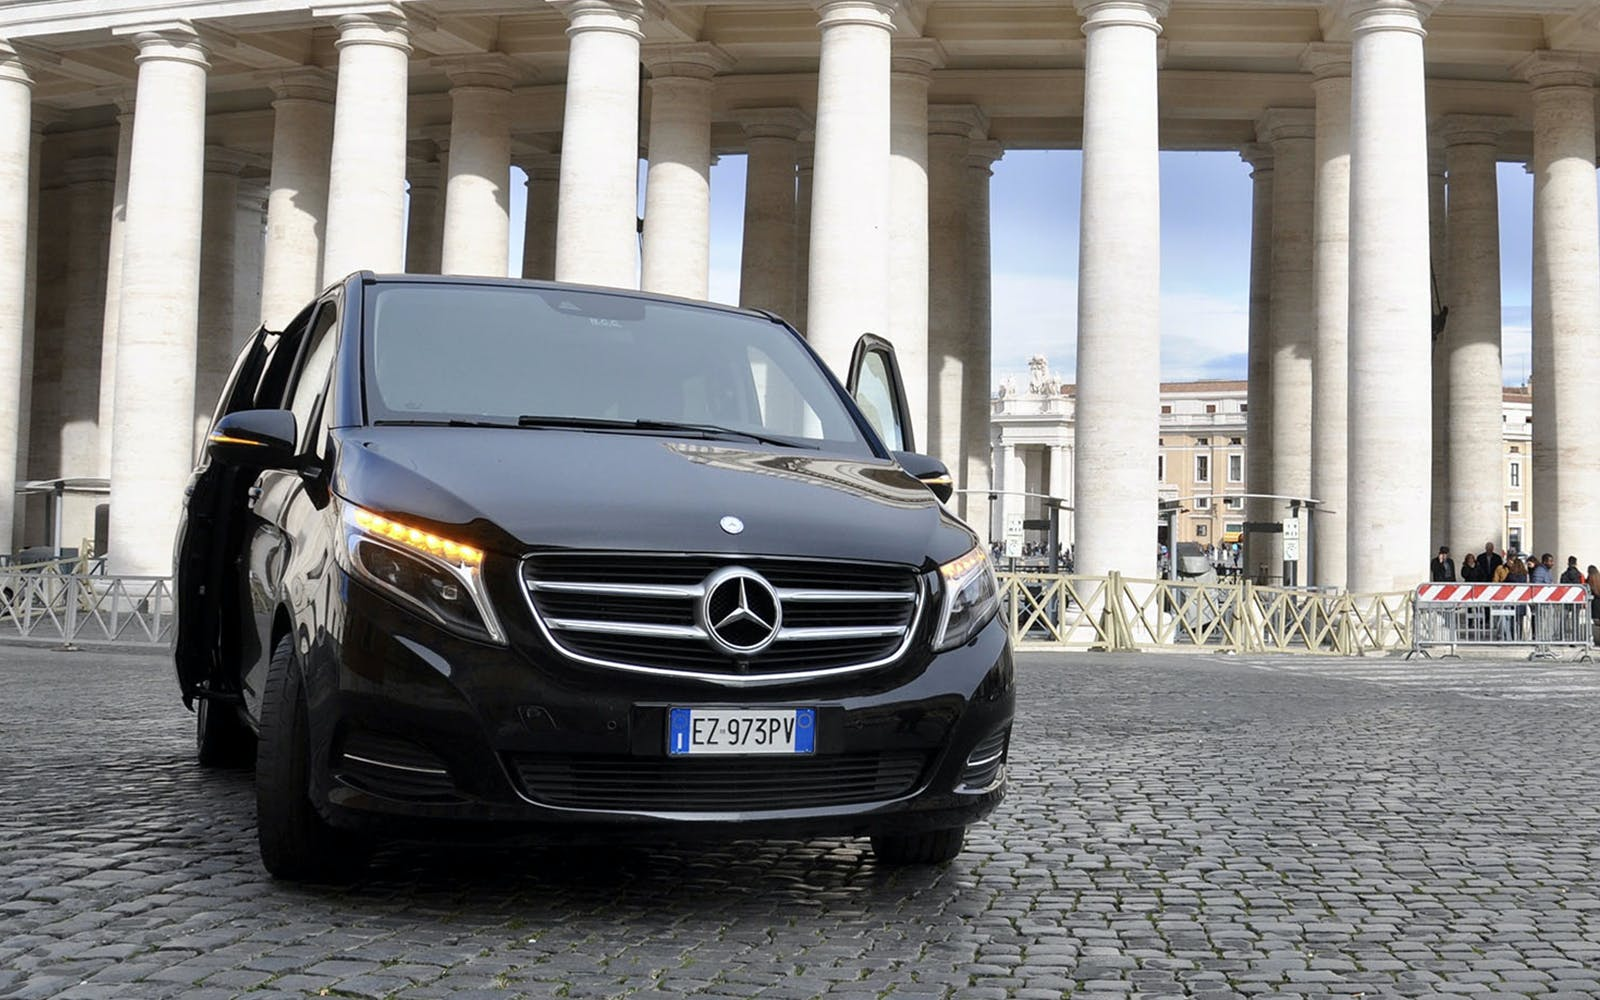 Rome Hotels to Fiumicino Airport Shared Shuttle Transfer